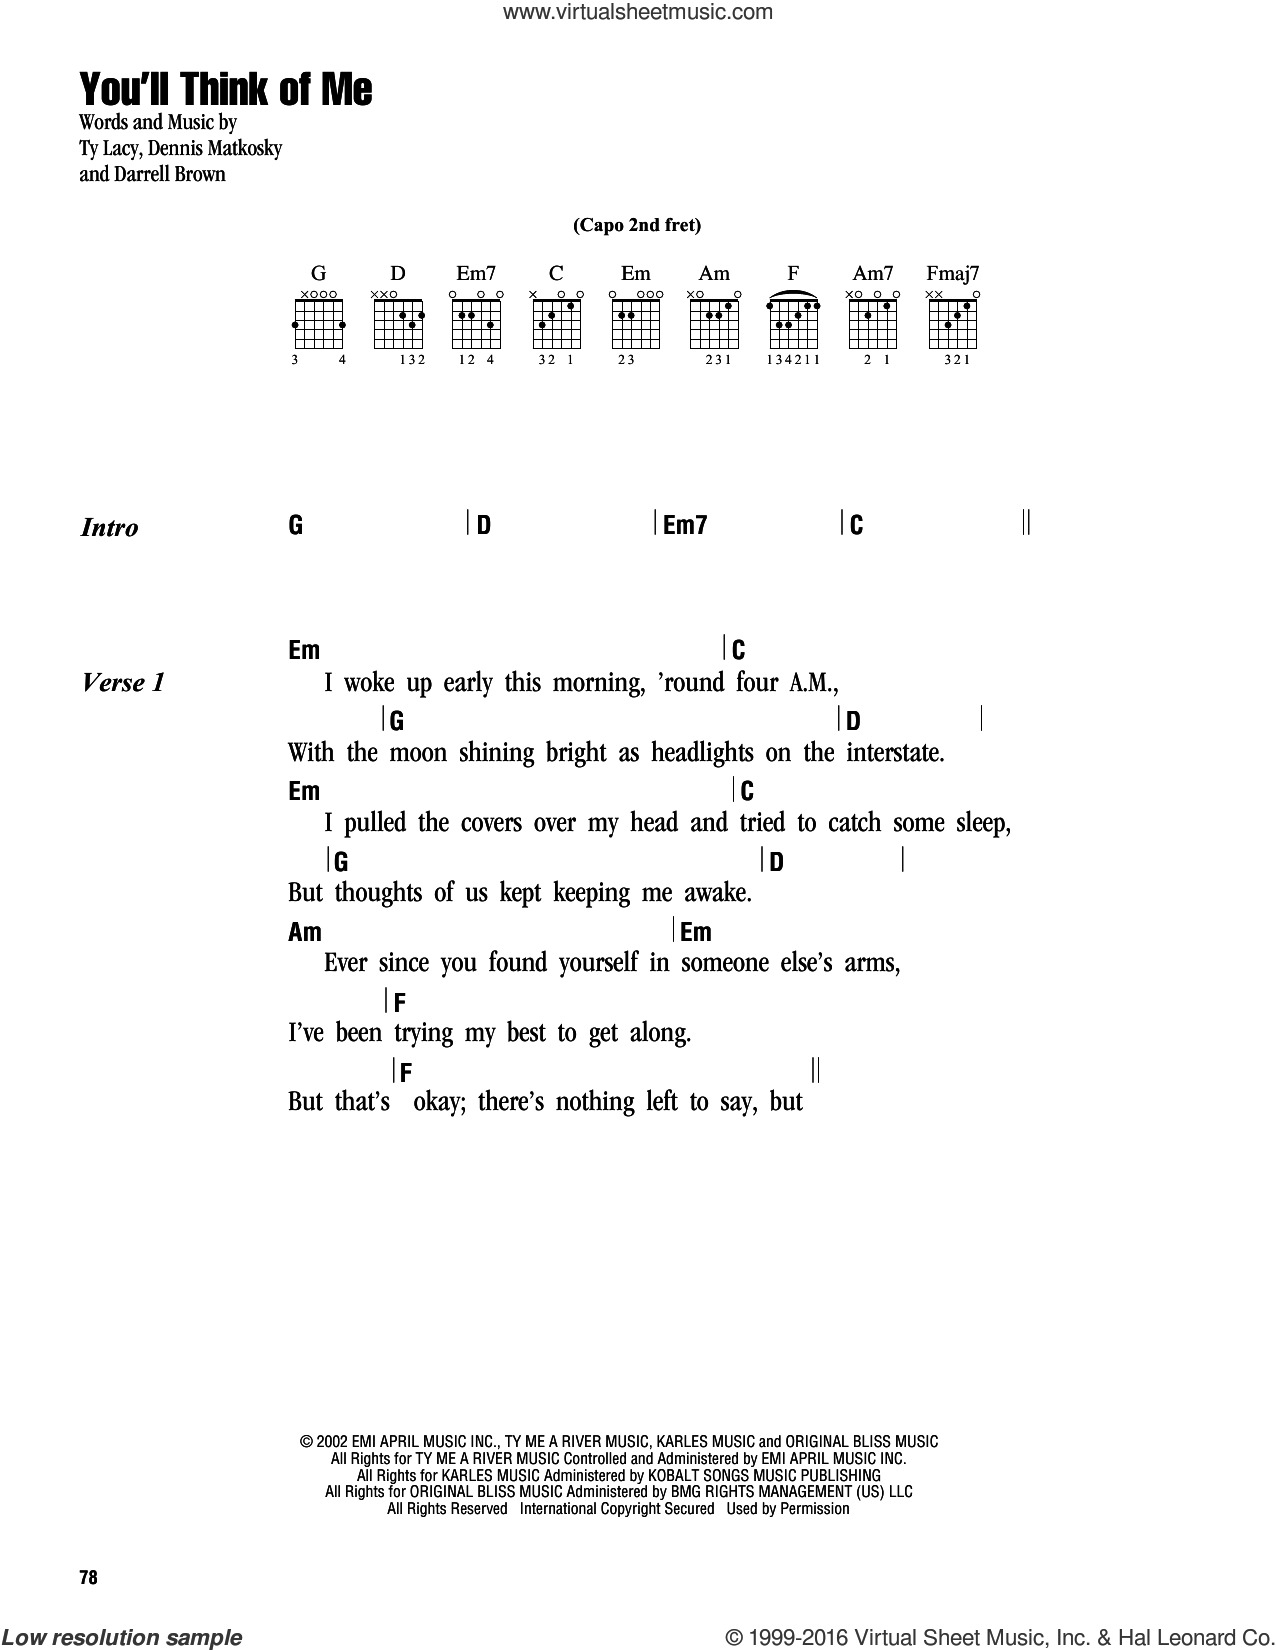 You'll Think Of Me sheet music for guitar (chords) by Ty Lacy, Keith Urban, Darrell Brown and Dennis Matkosky. Score Image Preview.